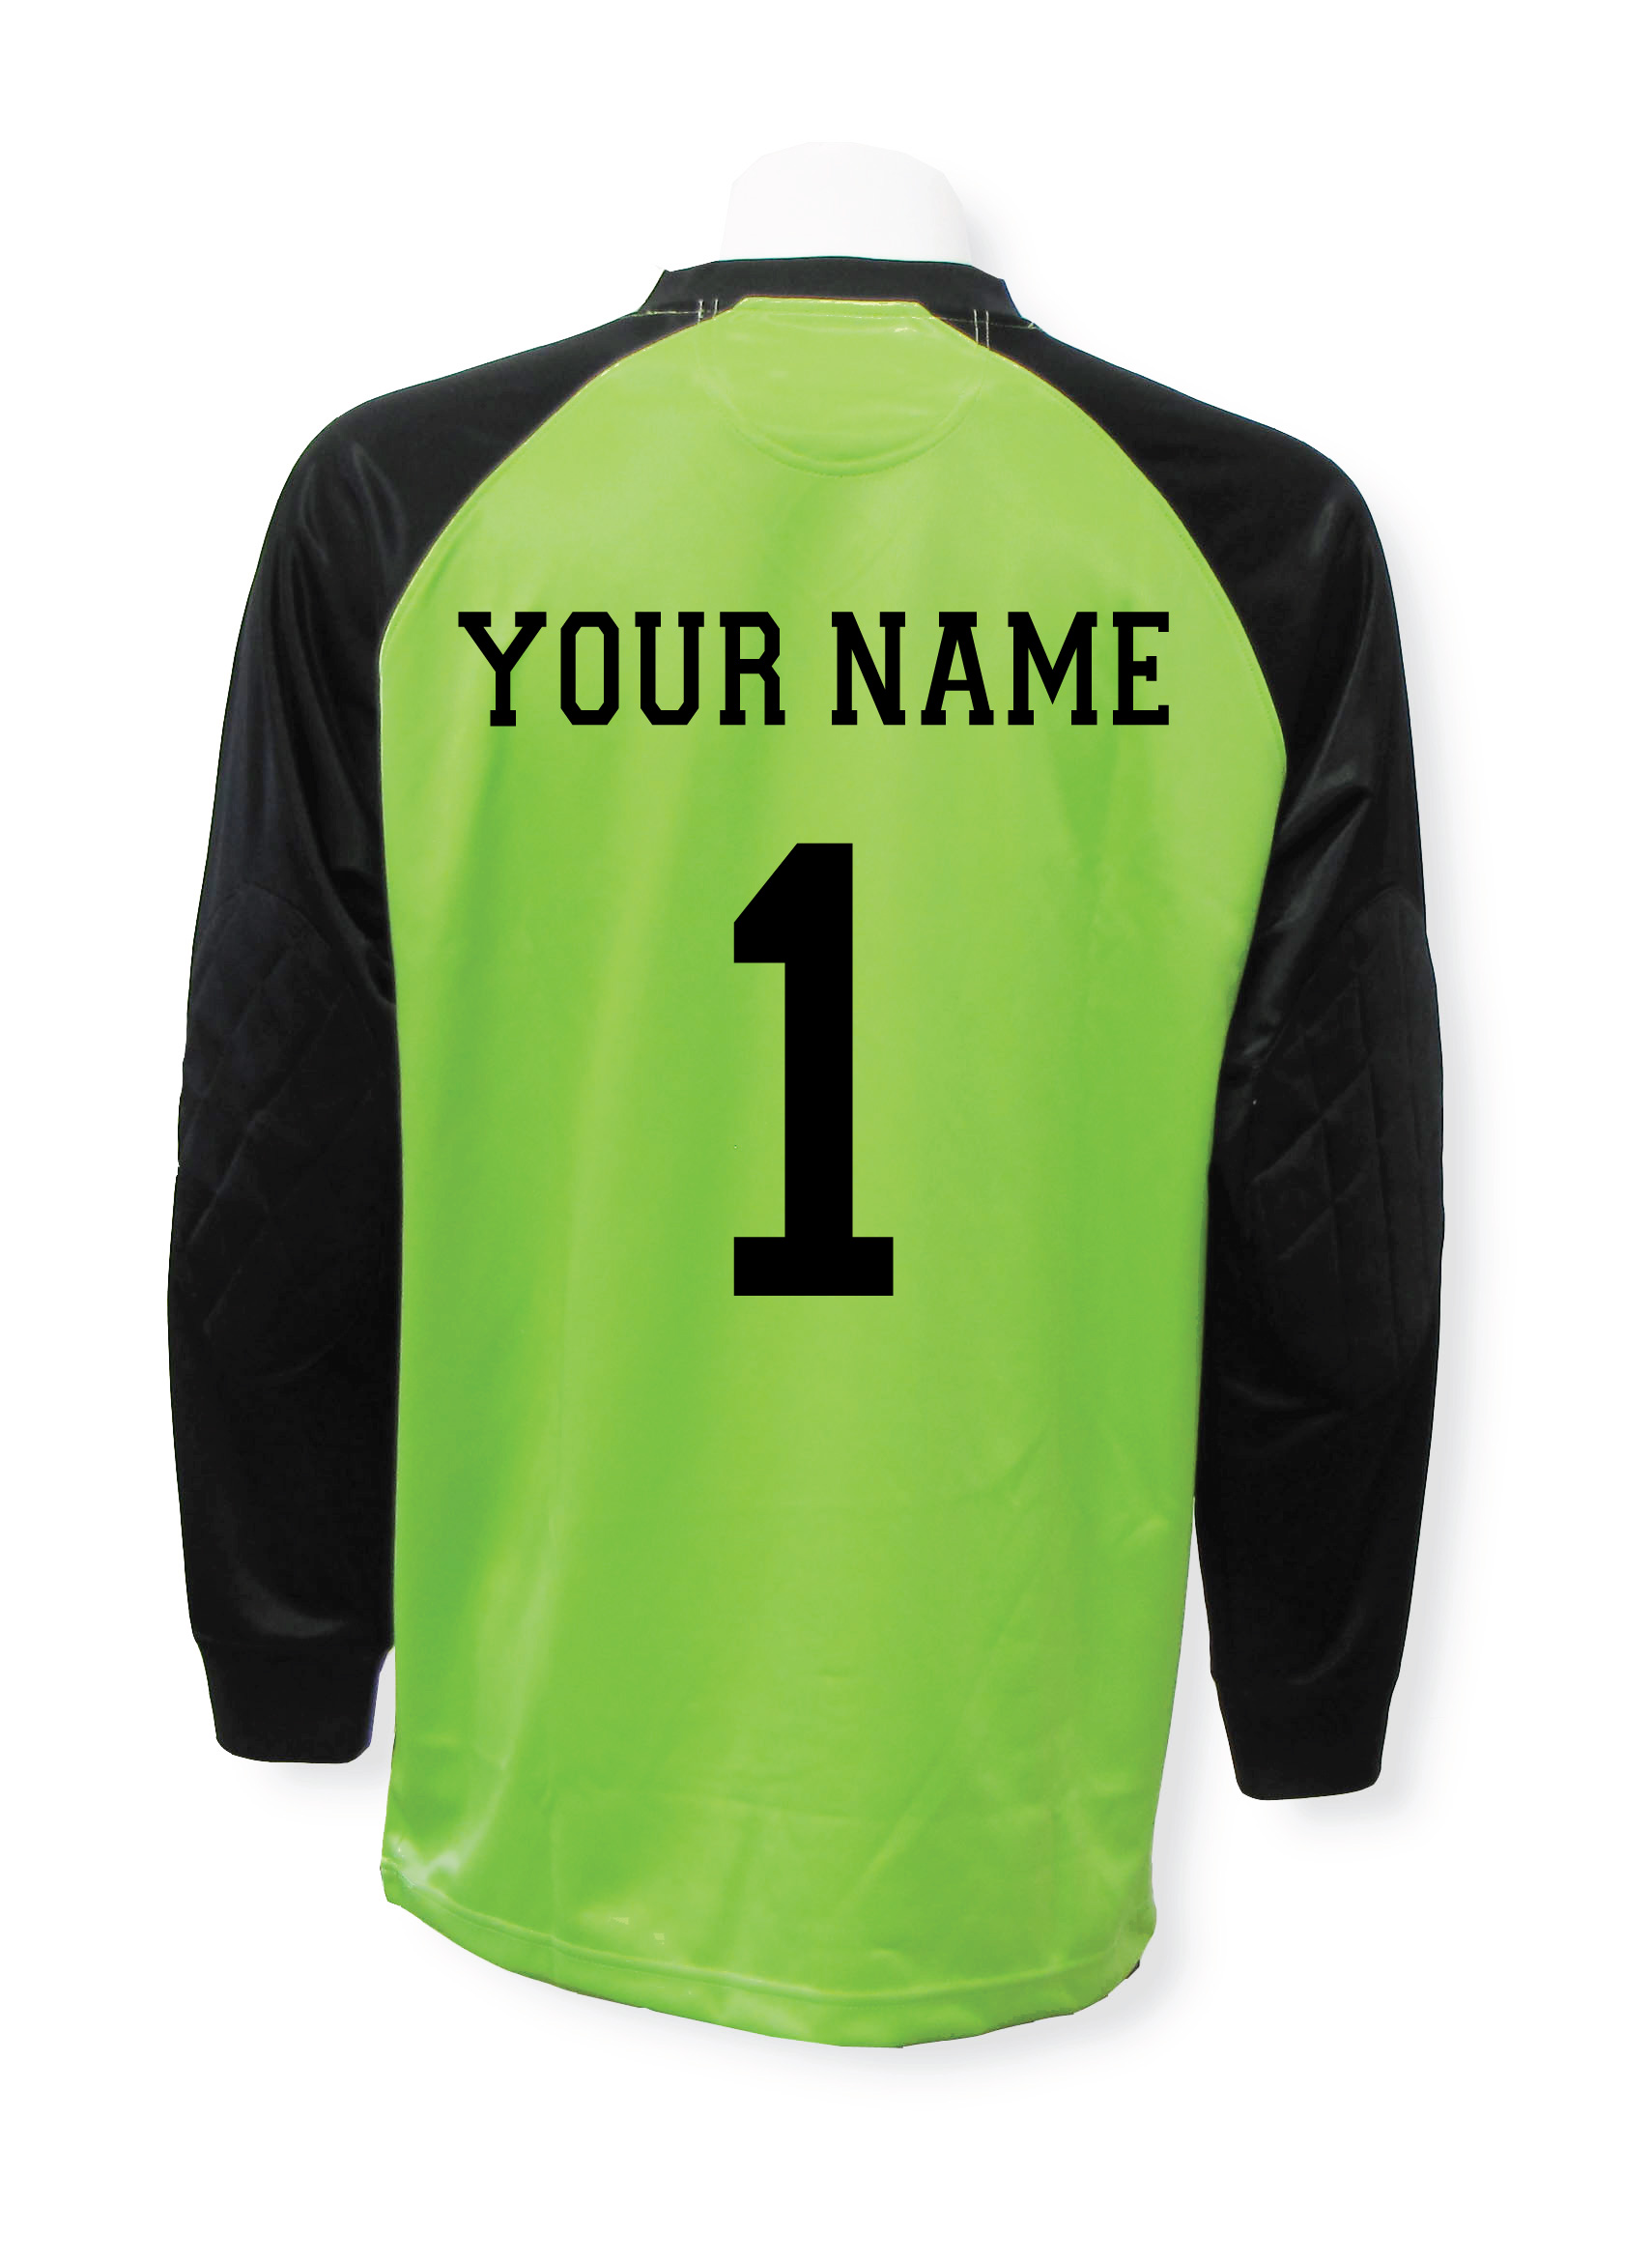 Personalized Soccer Goalie Jersey with your name and number by Code Four Athletics